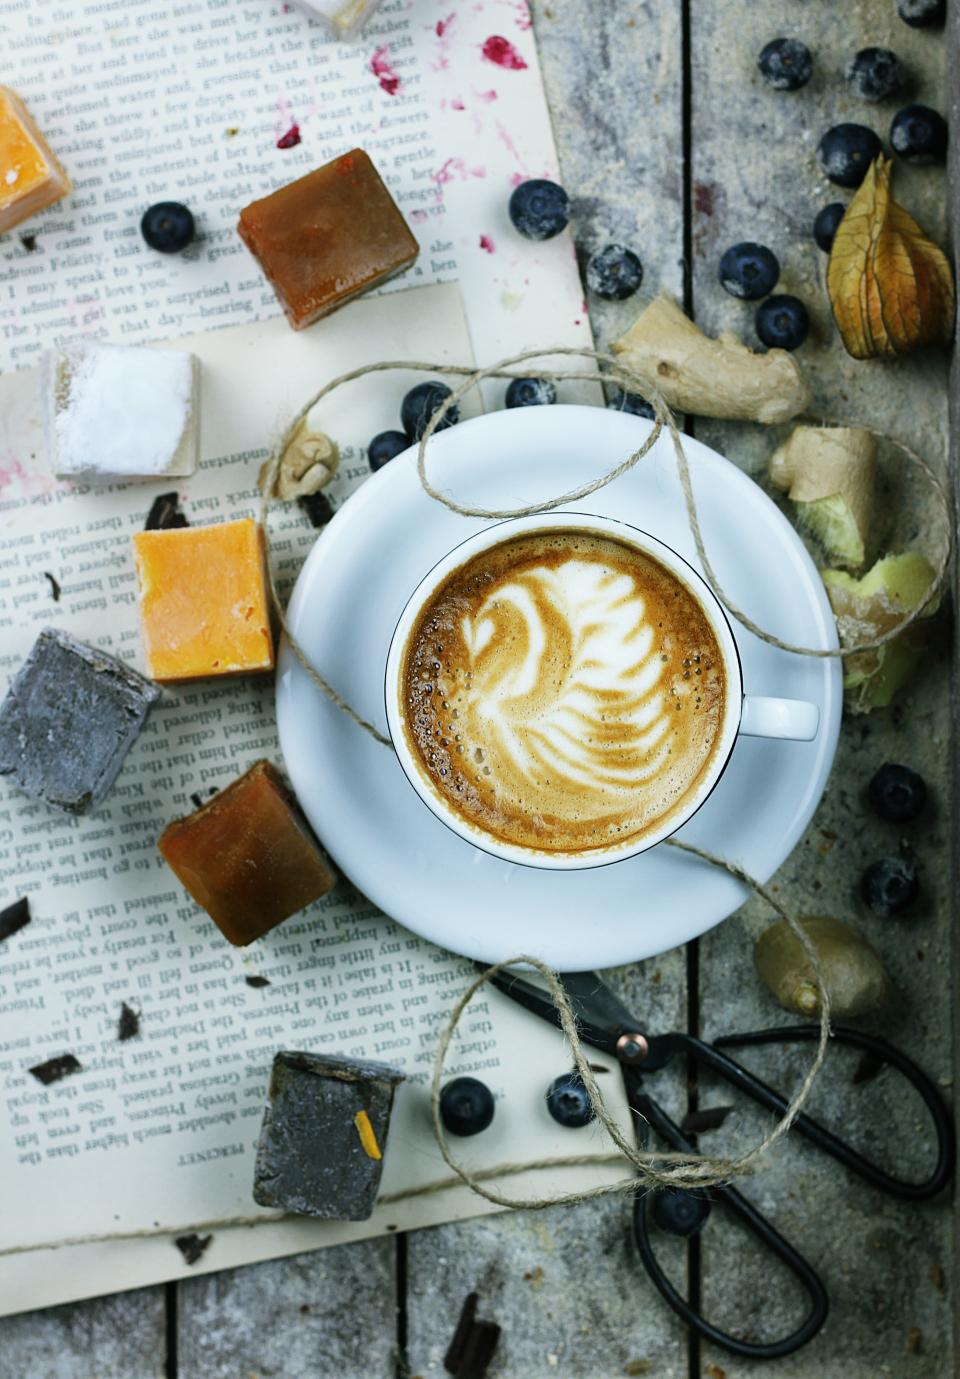 Free stock photo of cup saucer